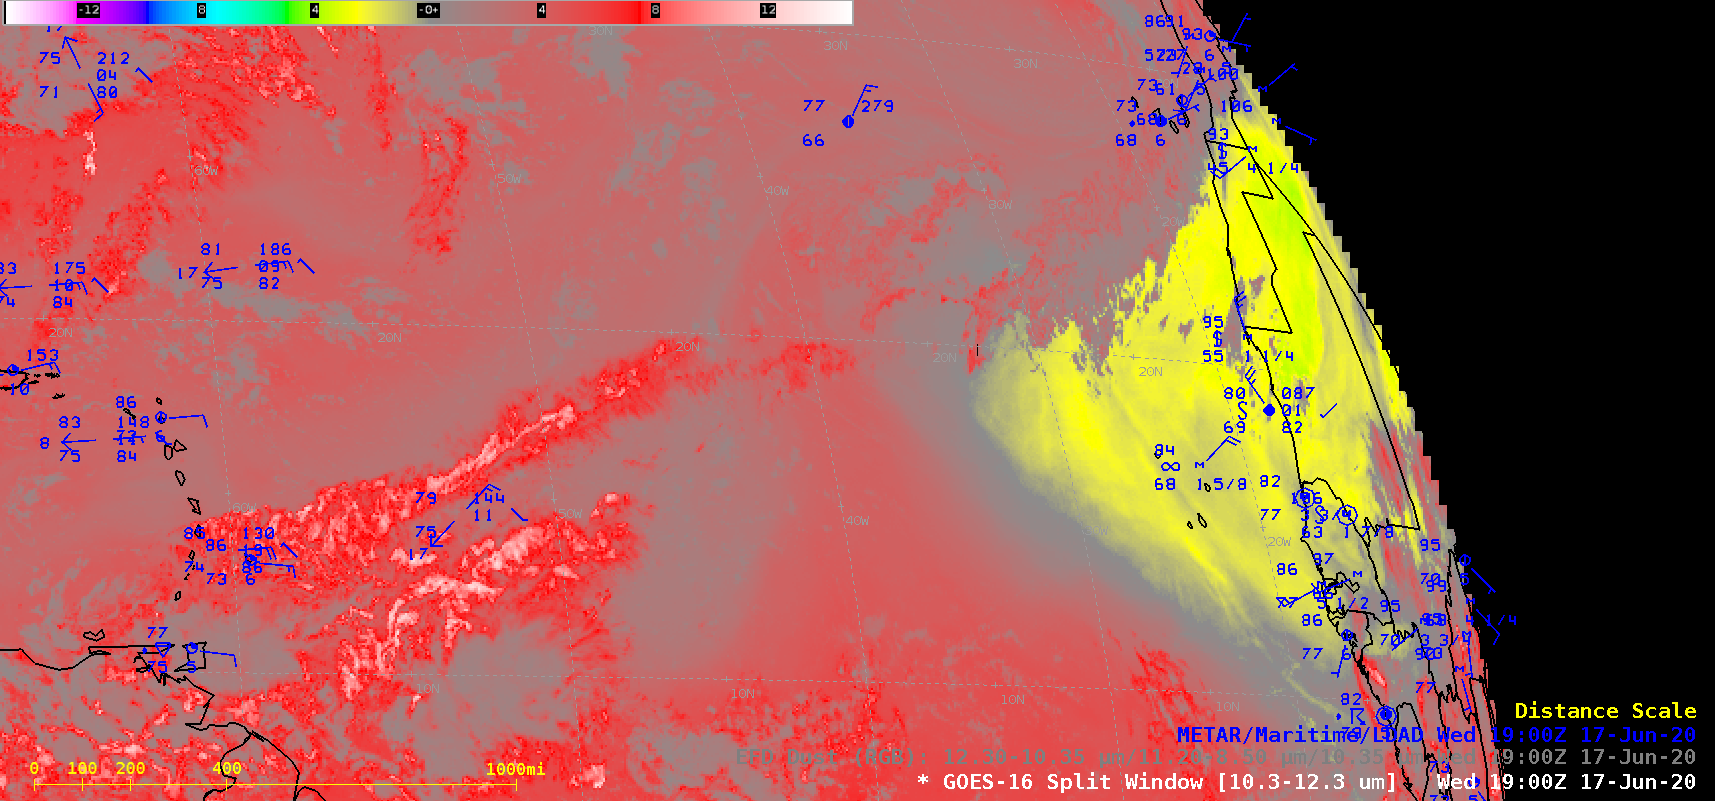 GOES-16 Split Window Difference (10.3 µm – 12.3 µm) and Dust RGB images, with surface reports plotted in blue [click to play animation | MP4]